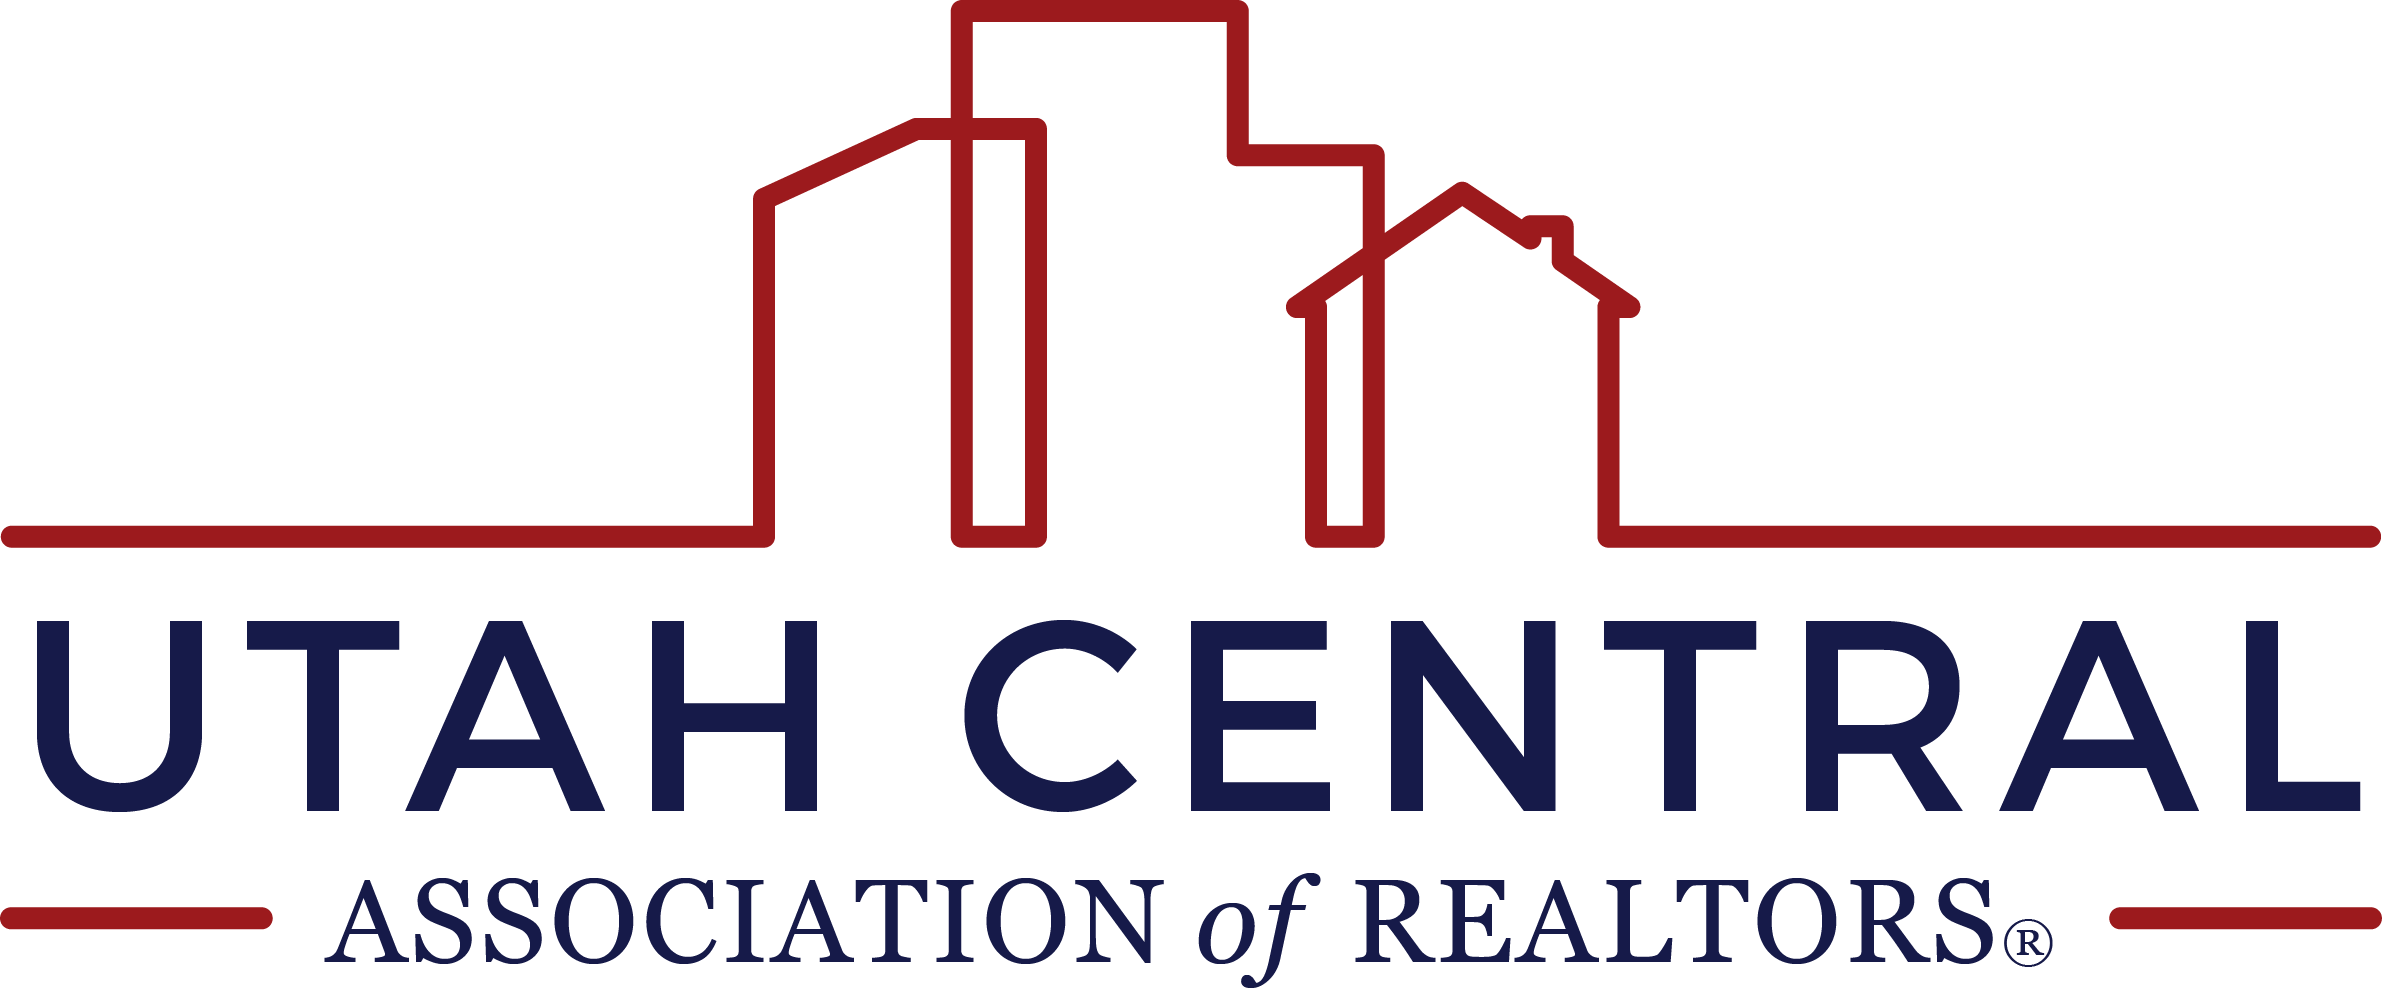 Utah Central Association of REALTORS® has been the local echo of the state and national goal to providing the The Voice for Real Estate.